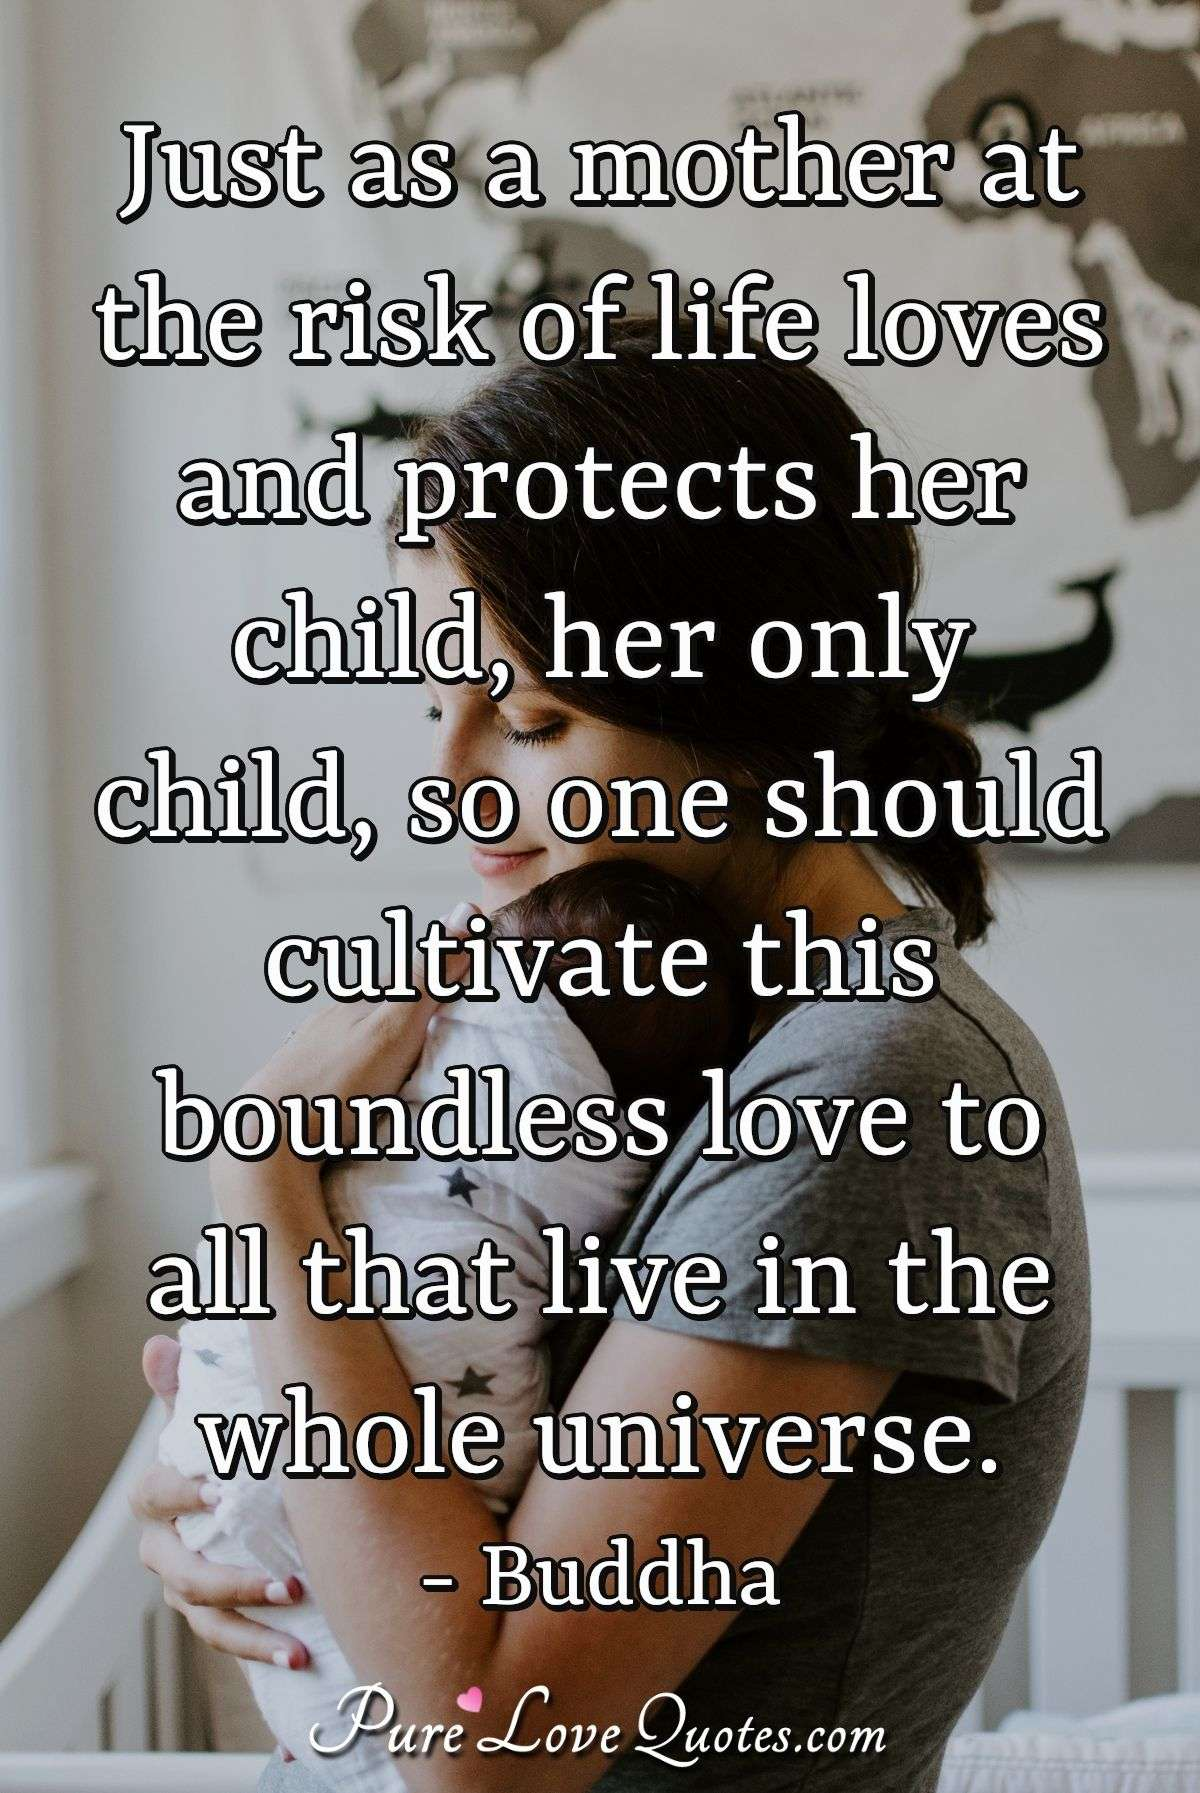 Just as a mother at the risk of life loves and protects her child, her only child, so one should cultivate this boundless love to all that live in the whole universe. - Buddha